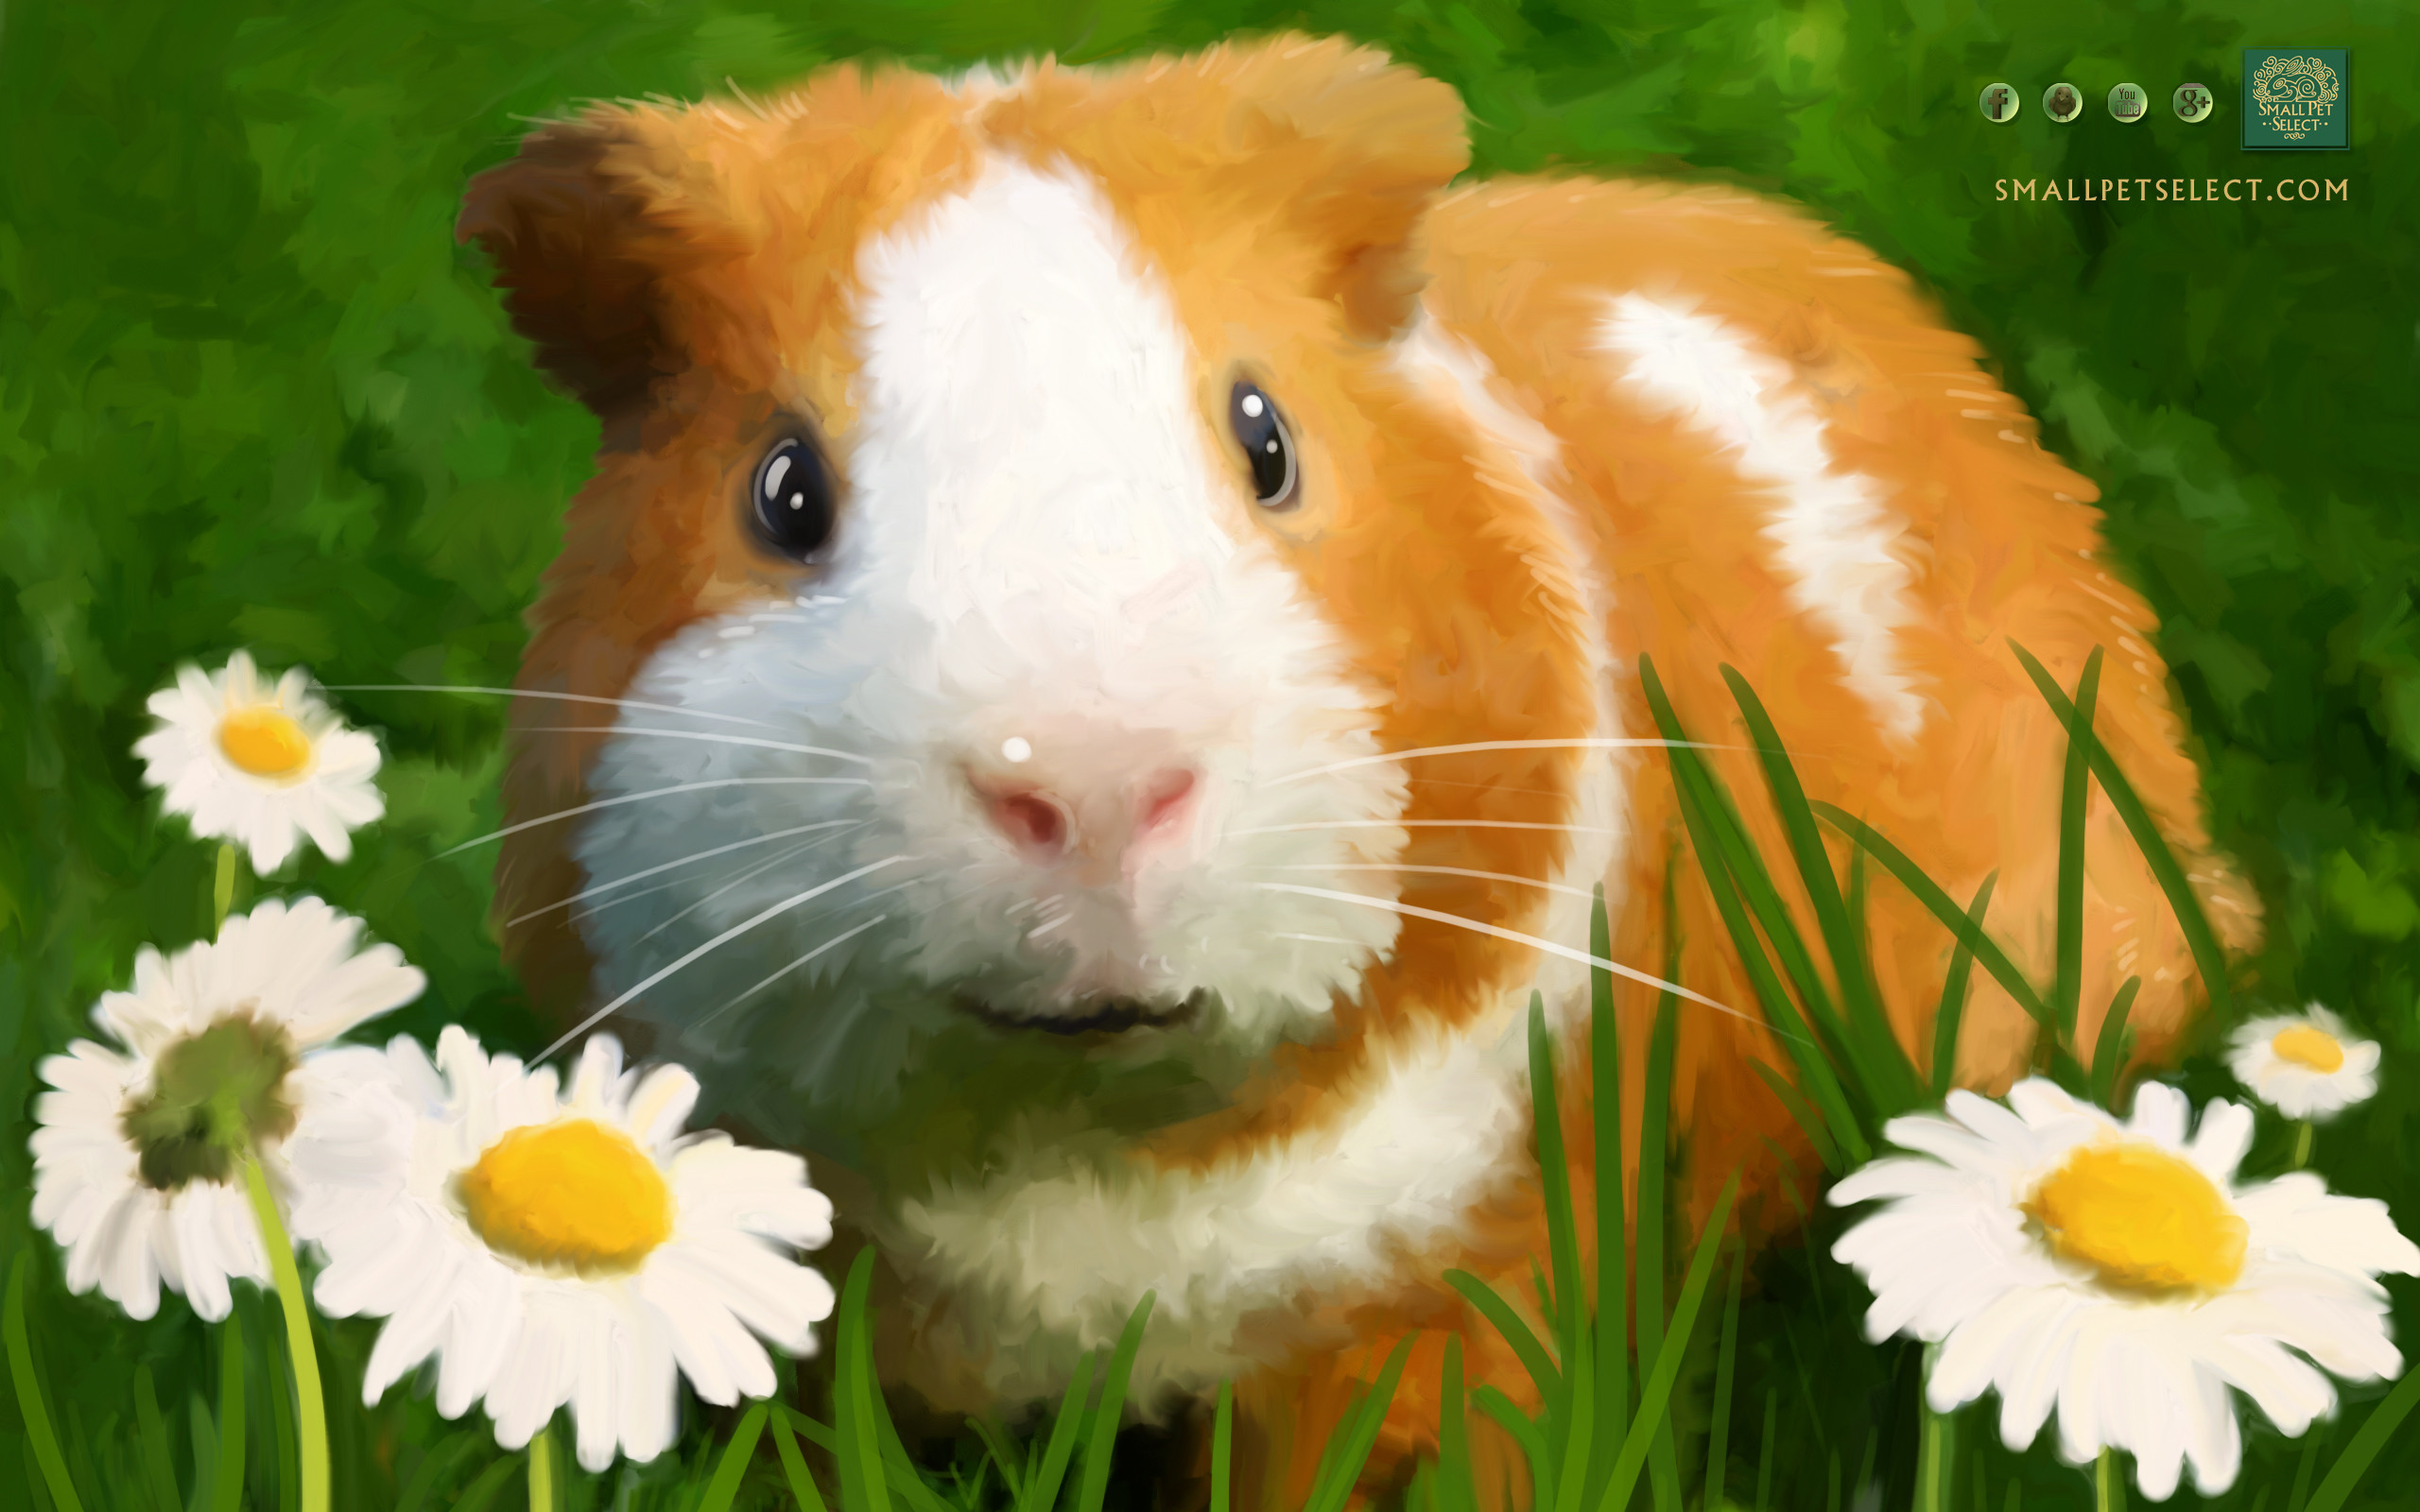 Res: 2560x1600, Guinea Pig Wallpaper Screensaver for your PC MAC Ipad cell phone